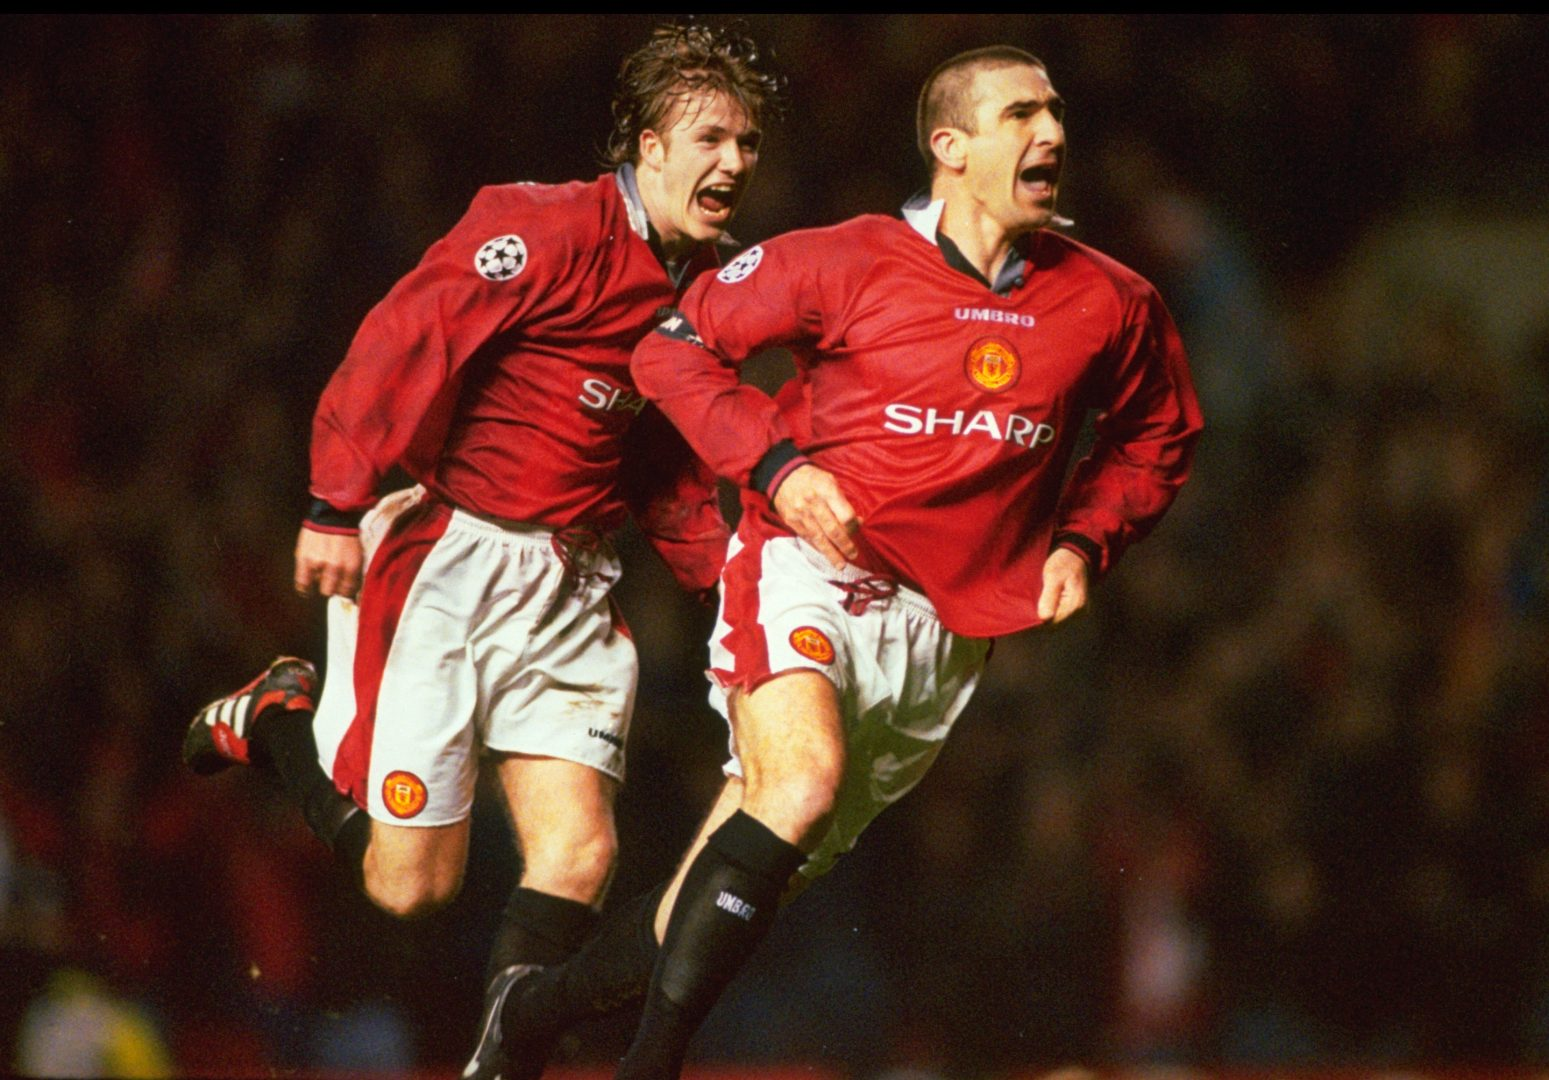 Eric Cantona celebrates scoring a goal with David Beckham. Old Trafford, 1996